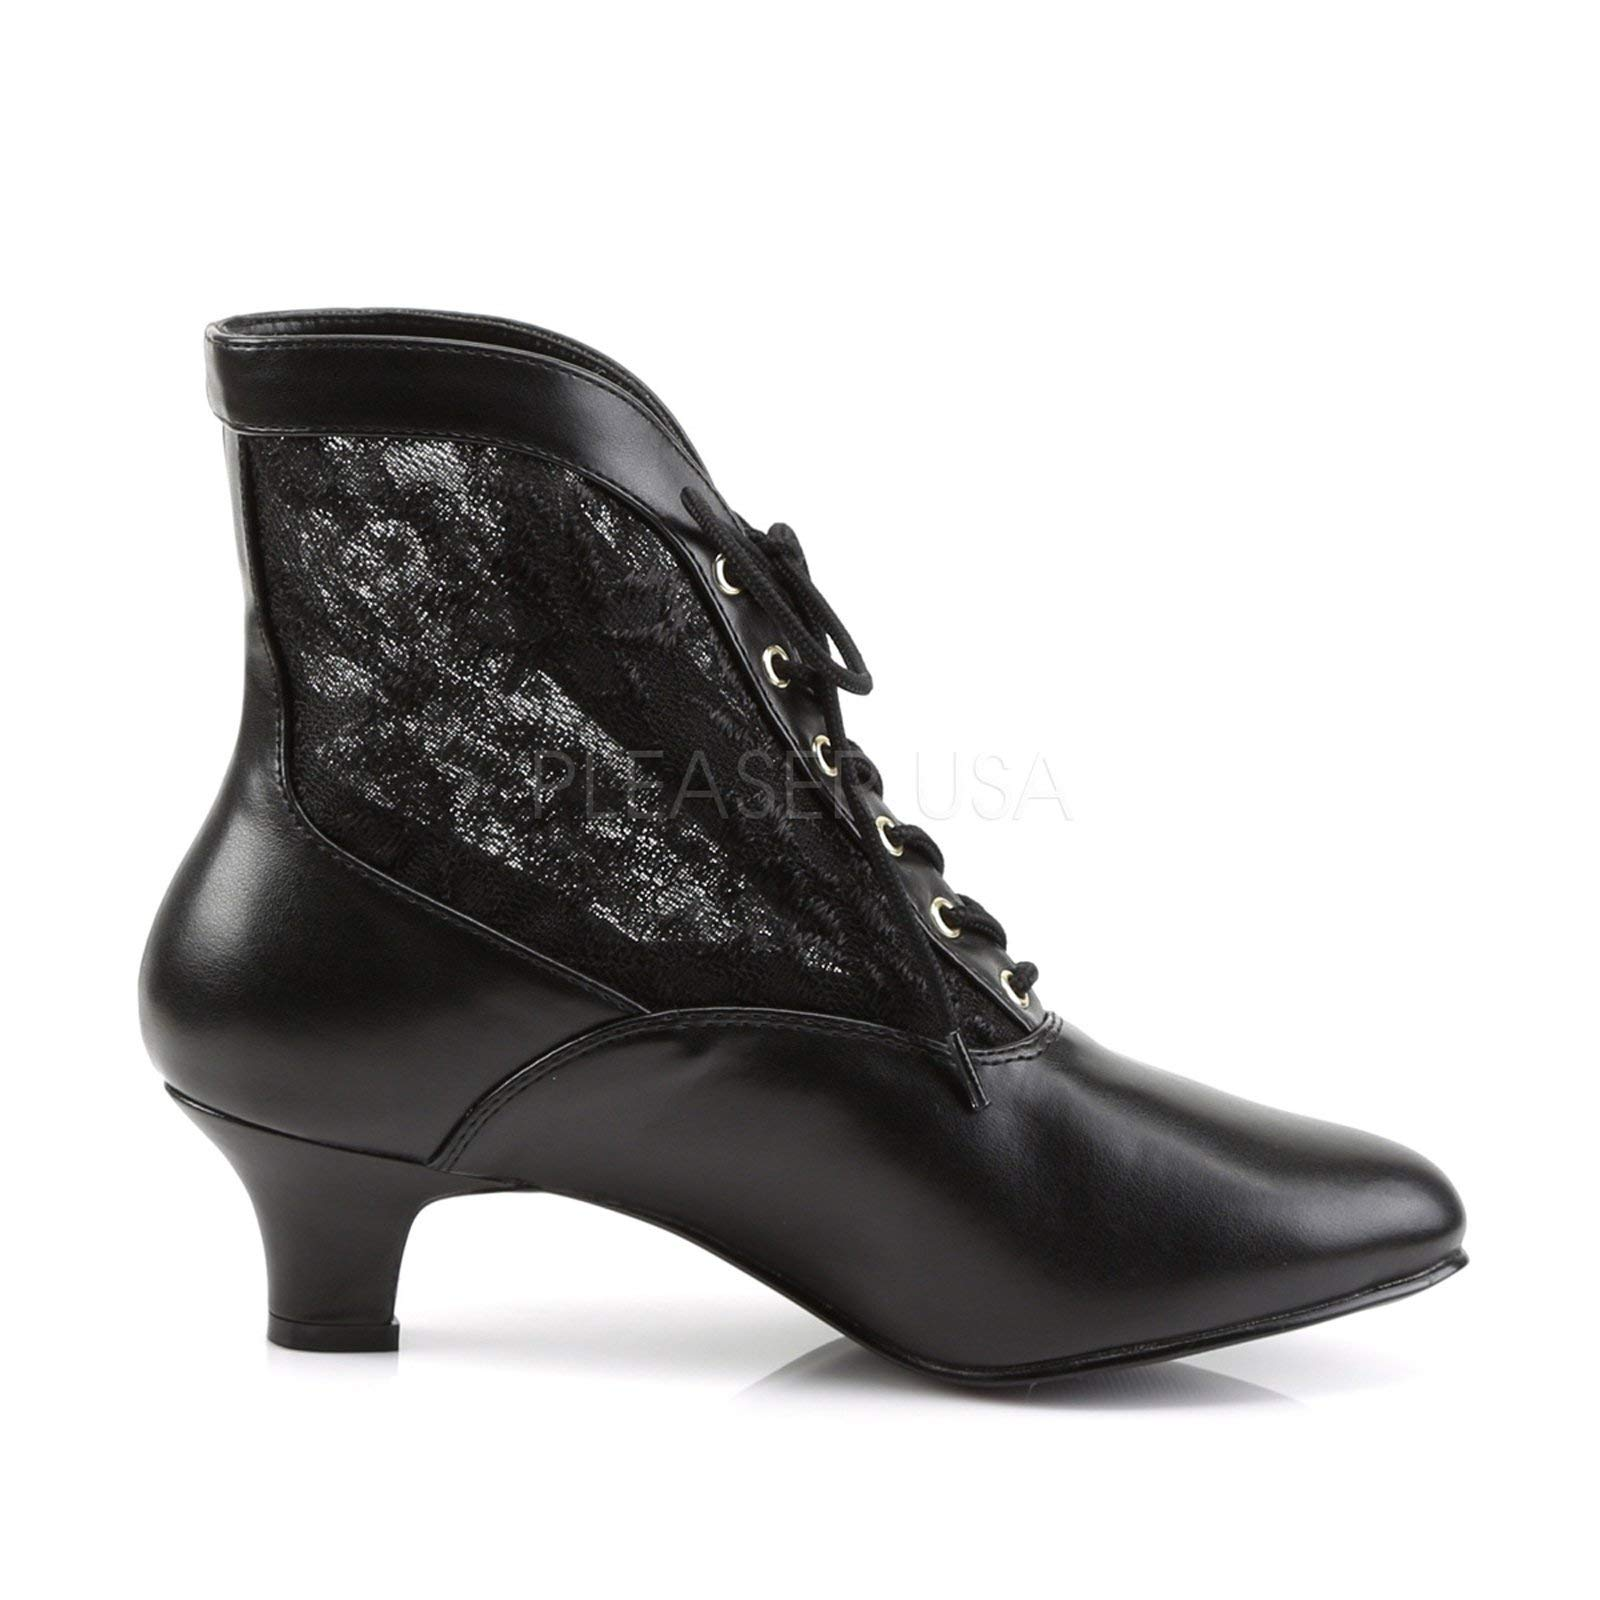 Pleaser Victorian Shoes Granny Boots